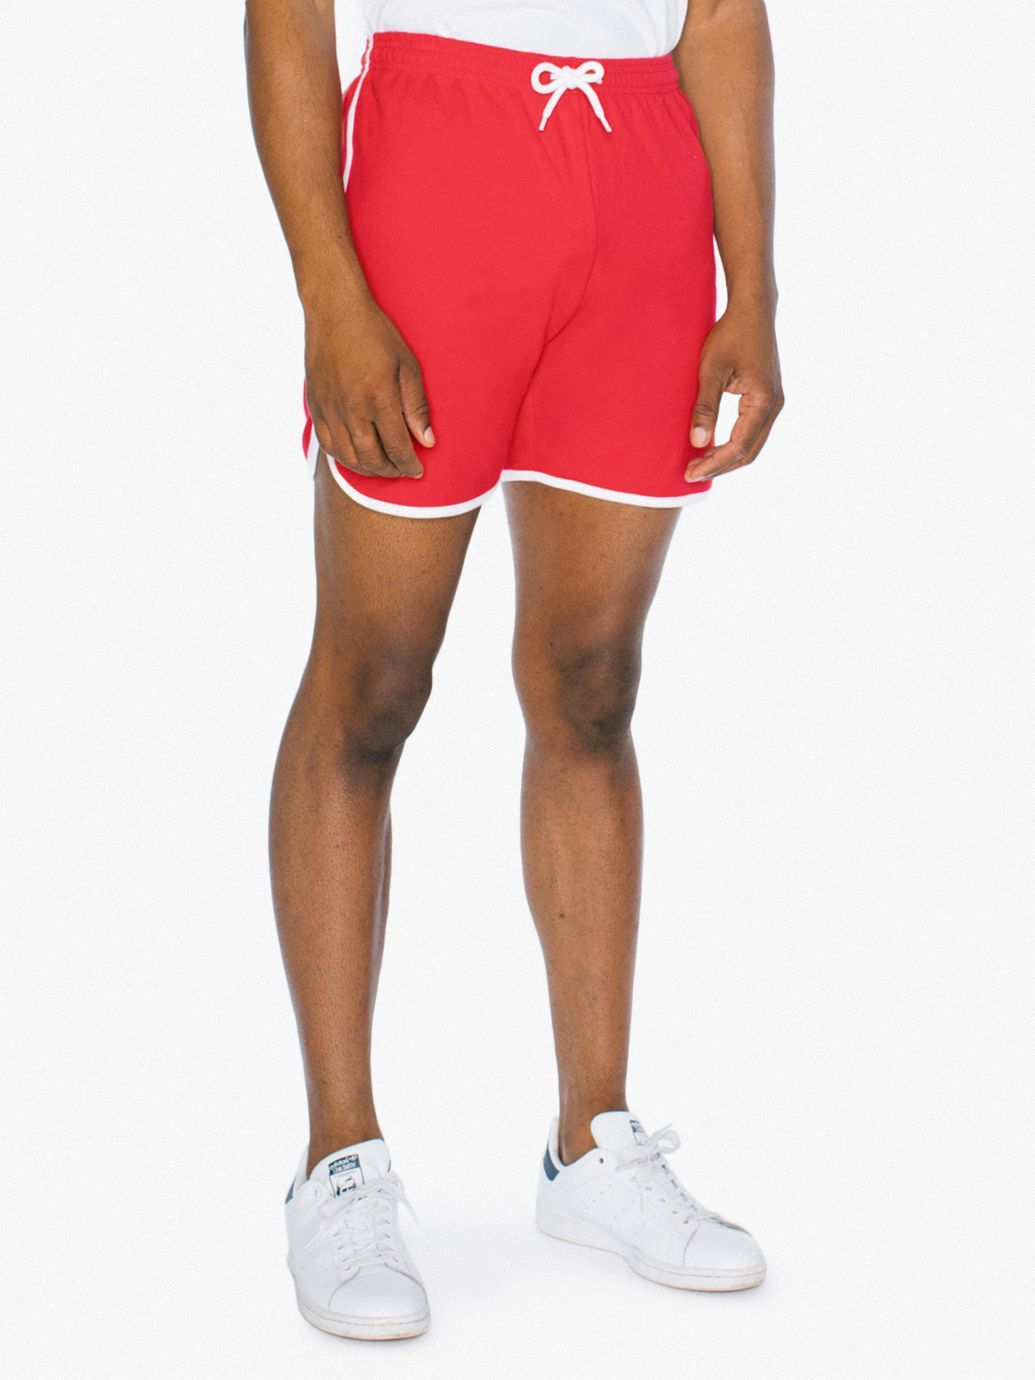 The Interlock Basketball Shorts Are A Modern Take On The Classic 70 S Running Shorts For Men Br Br Mens Fashion Classic Basketball Shorts American Apparel